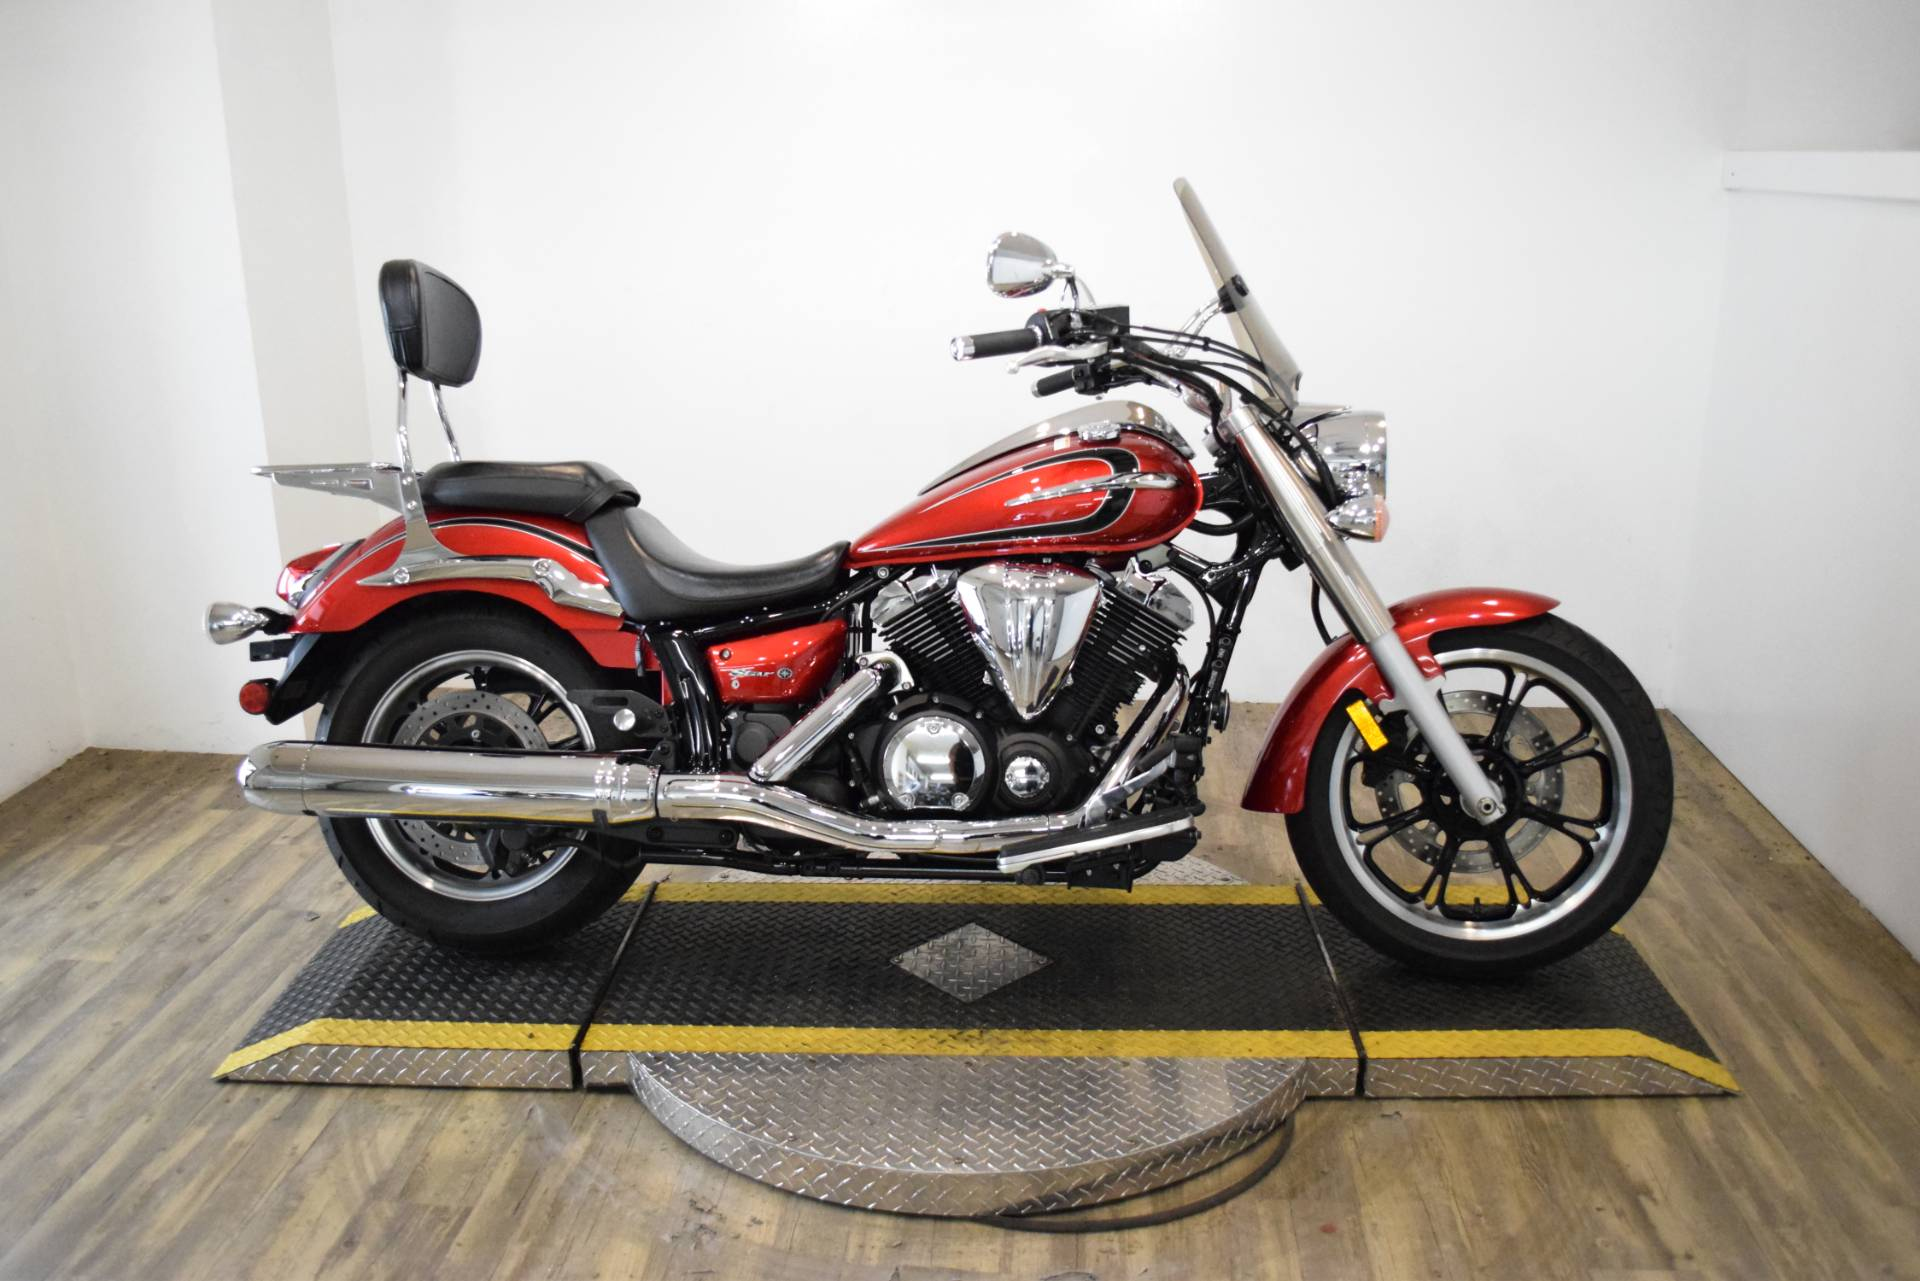 2012 Yamaha V Star 950 in Wauconda, Illinois - Photo 1